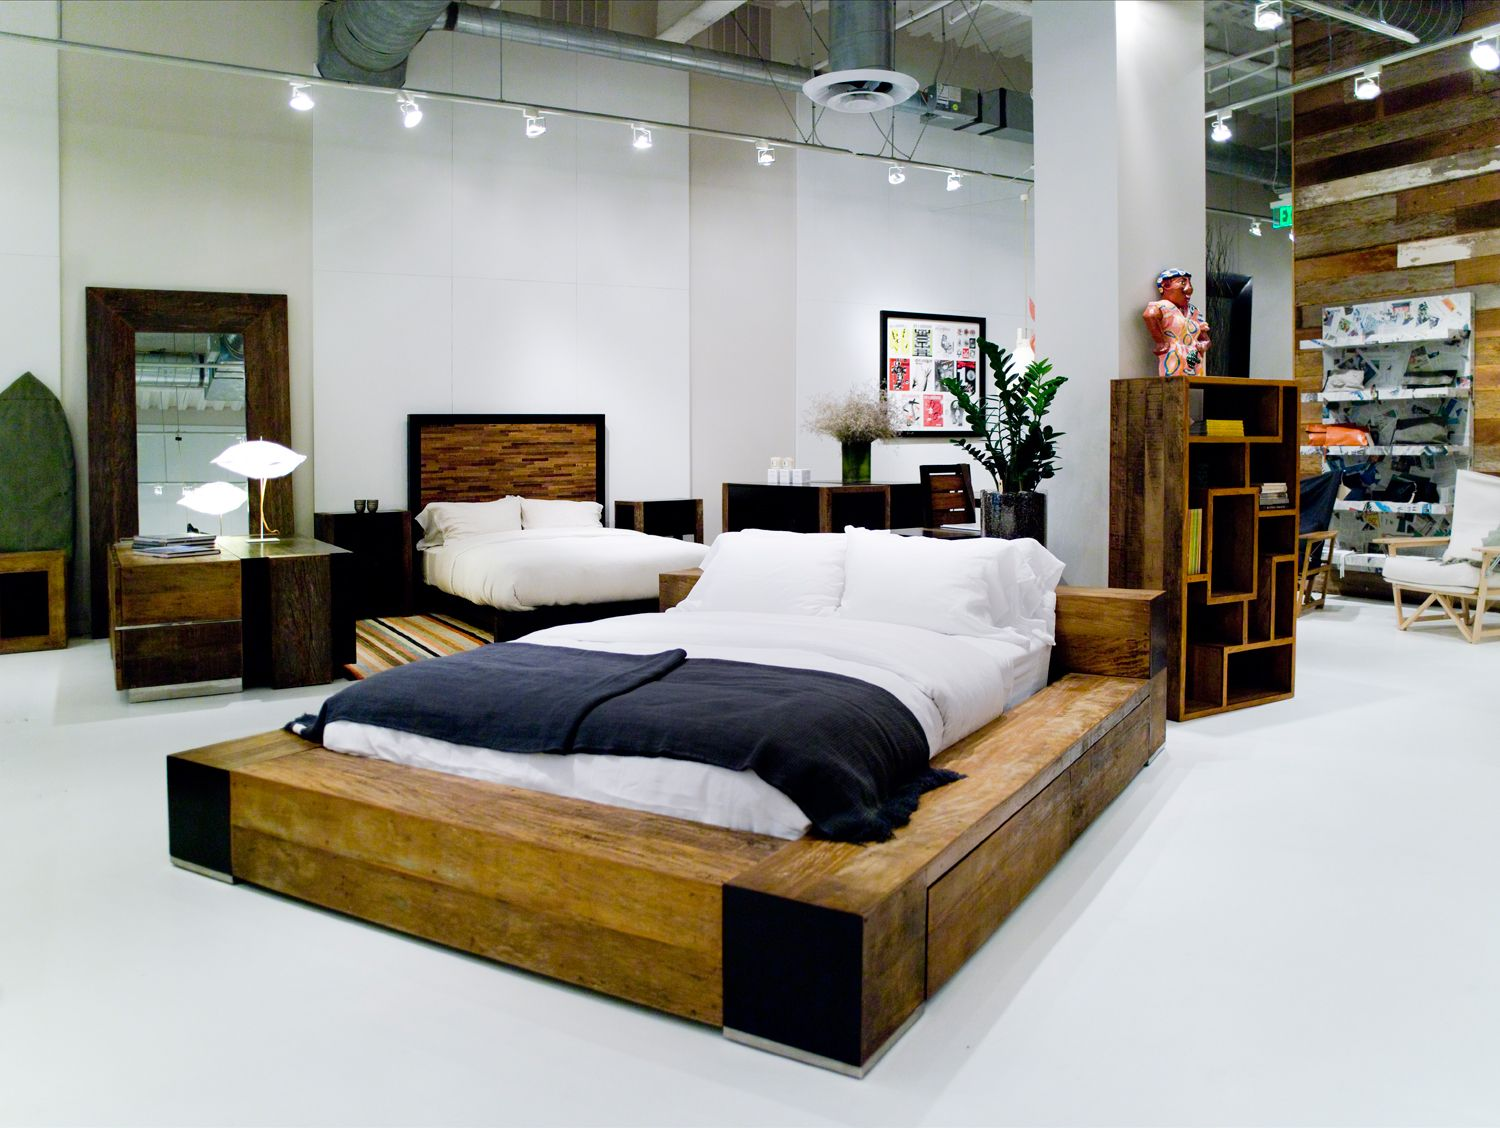 Edge bed environment orange county showroom small appartment pinterest bedroom bed and for Bedroom furniture orange county